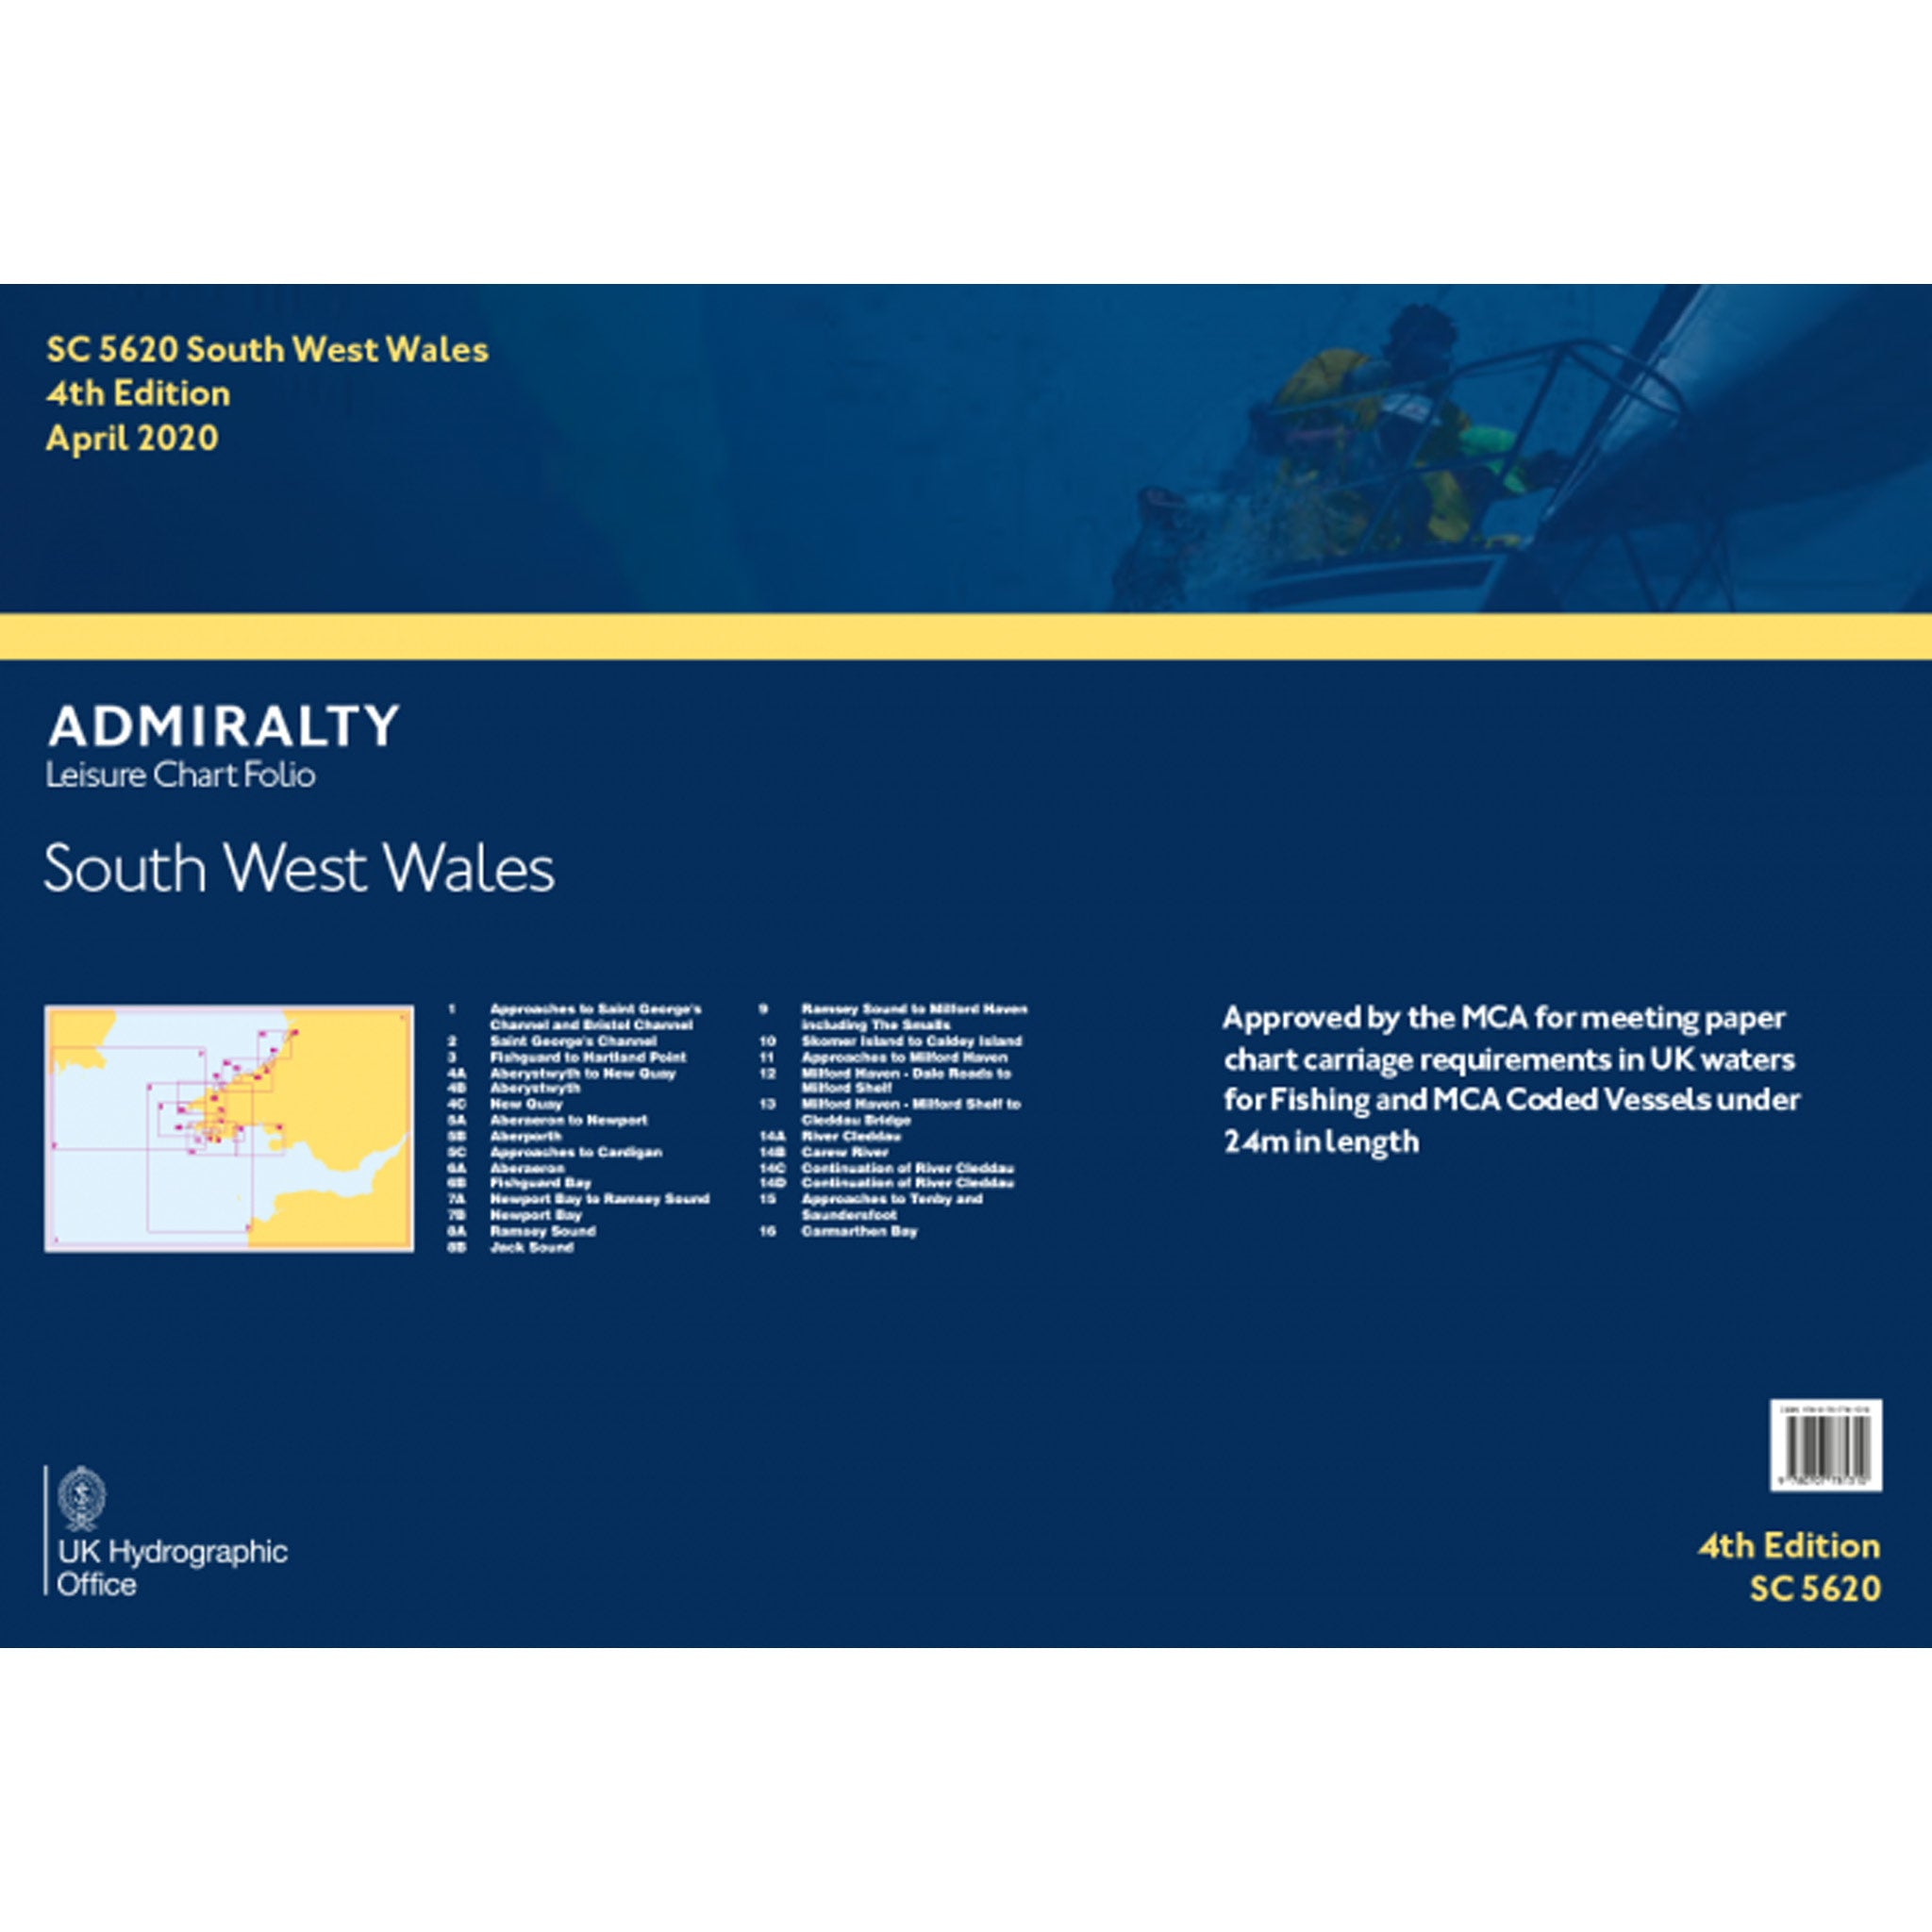 Admiralty Small Craft Folio SC5620 South West Wales